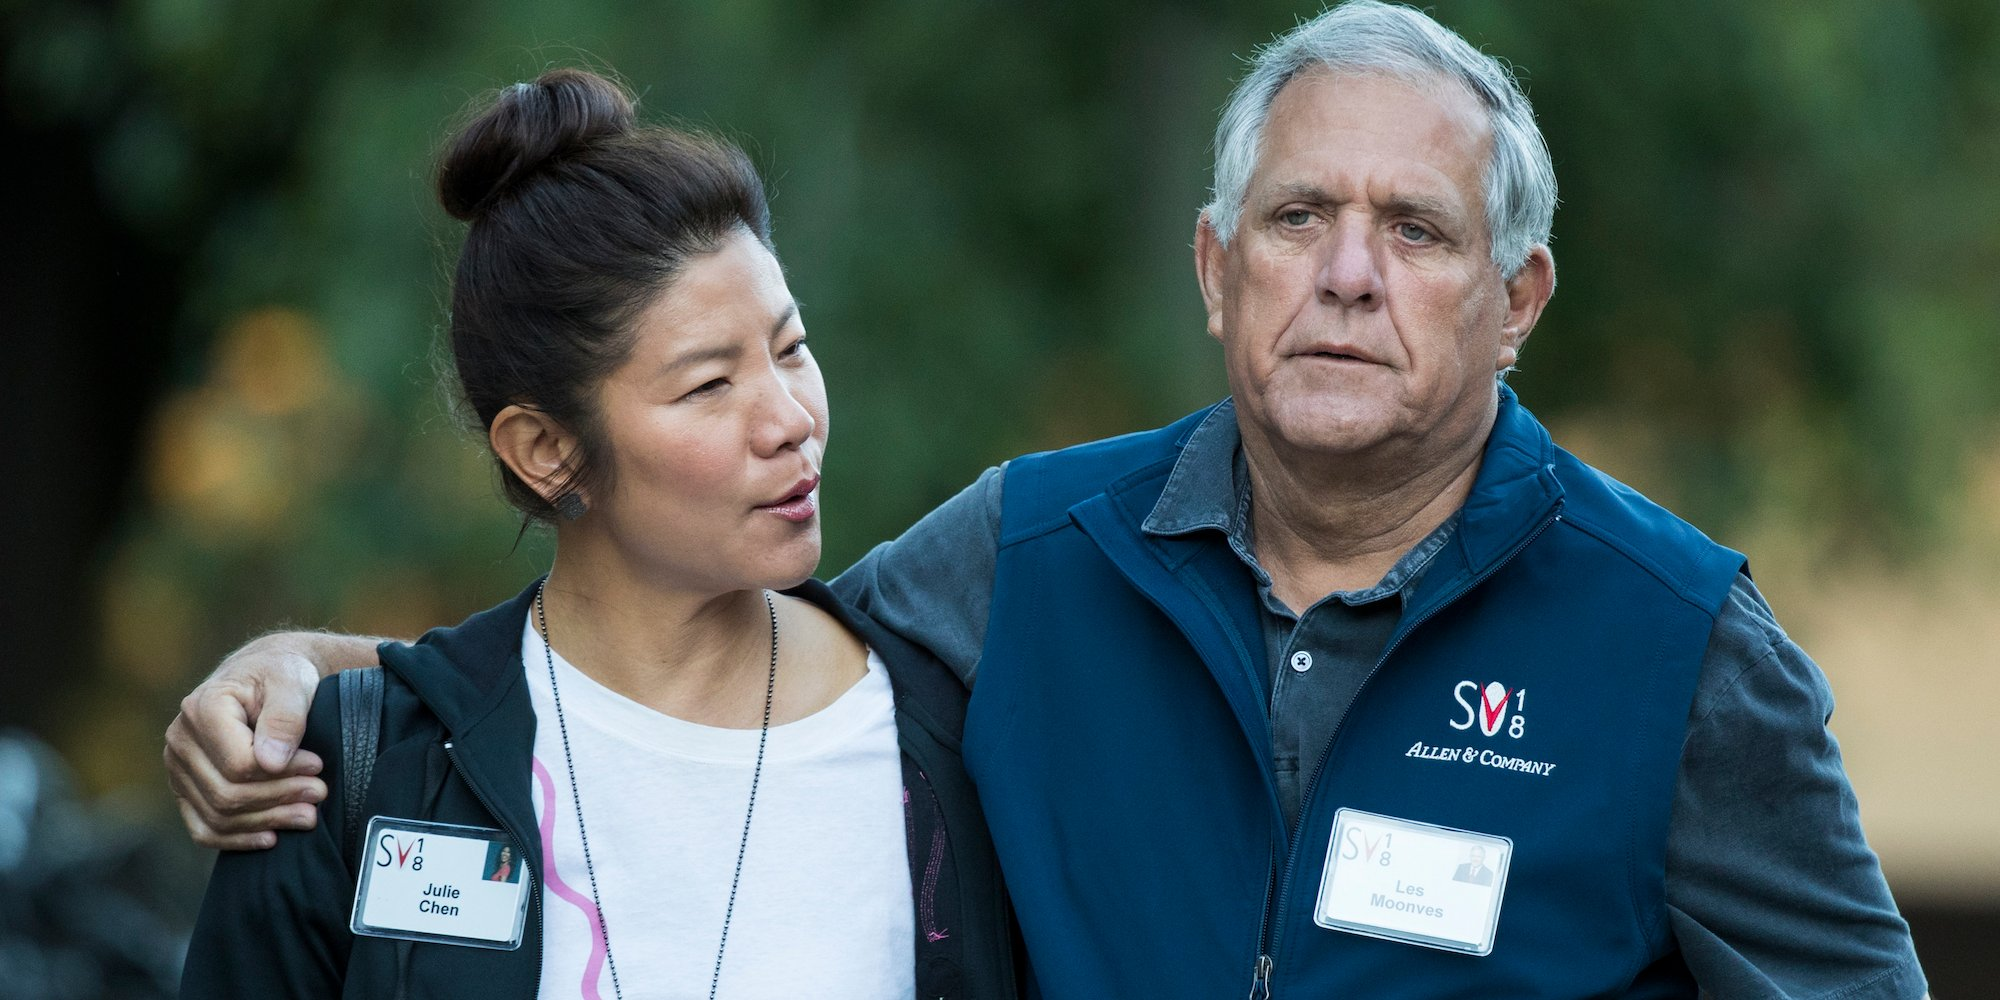 Les Moonves Sun Valley